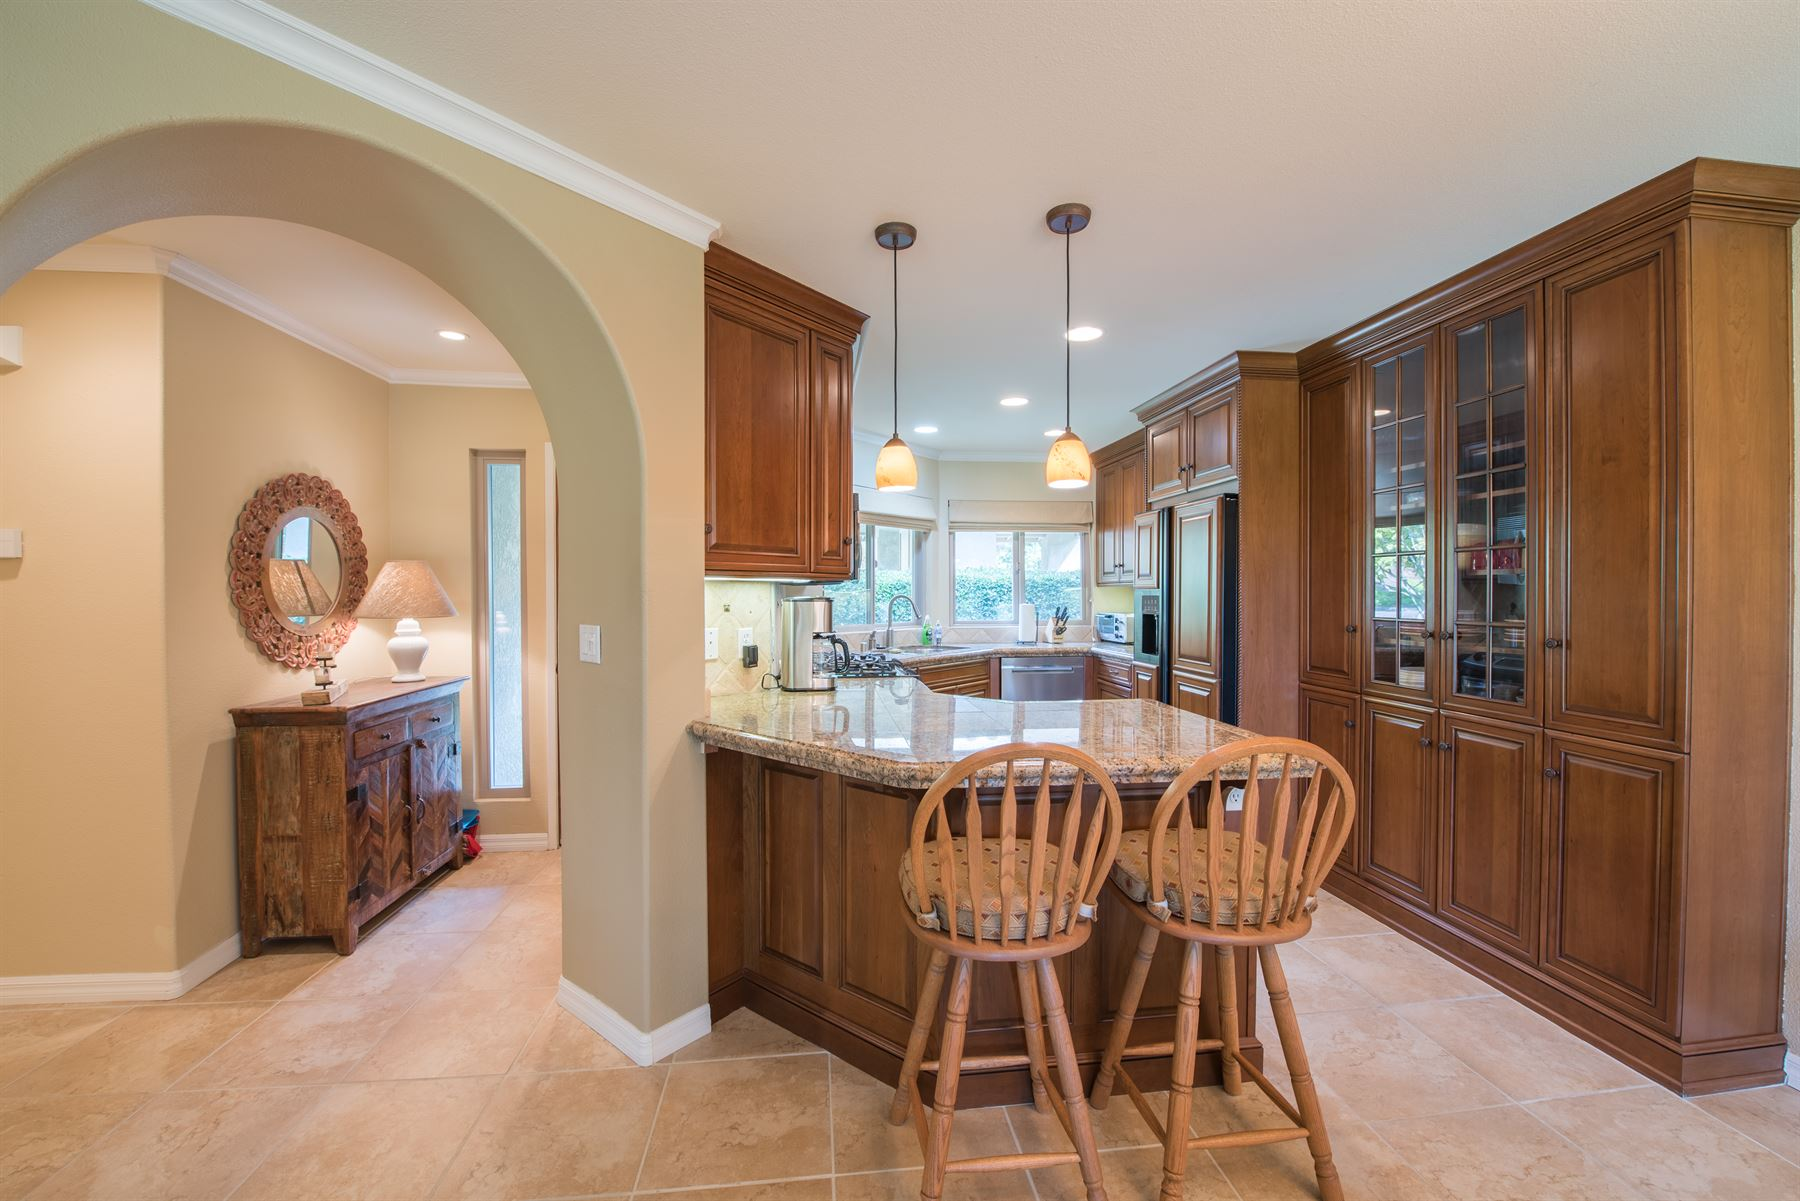 Golfer's Getaway - Interior - Wrap-around kitchen with dual barstools